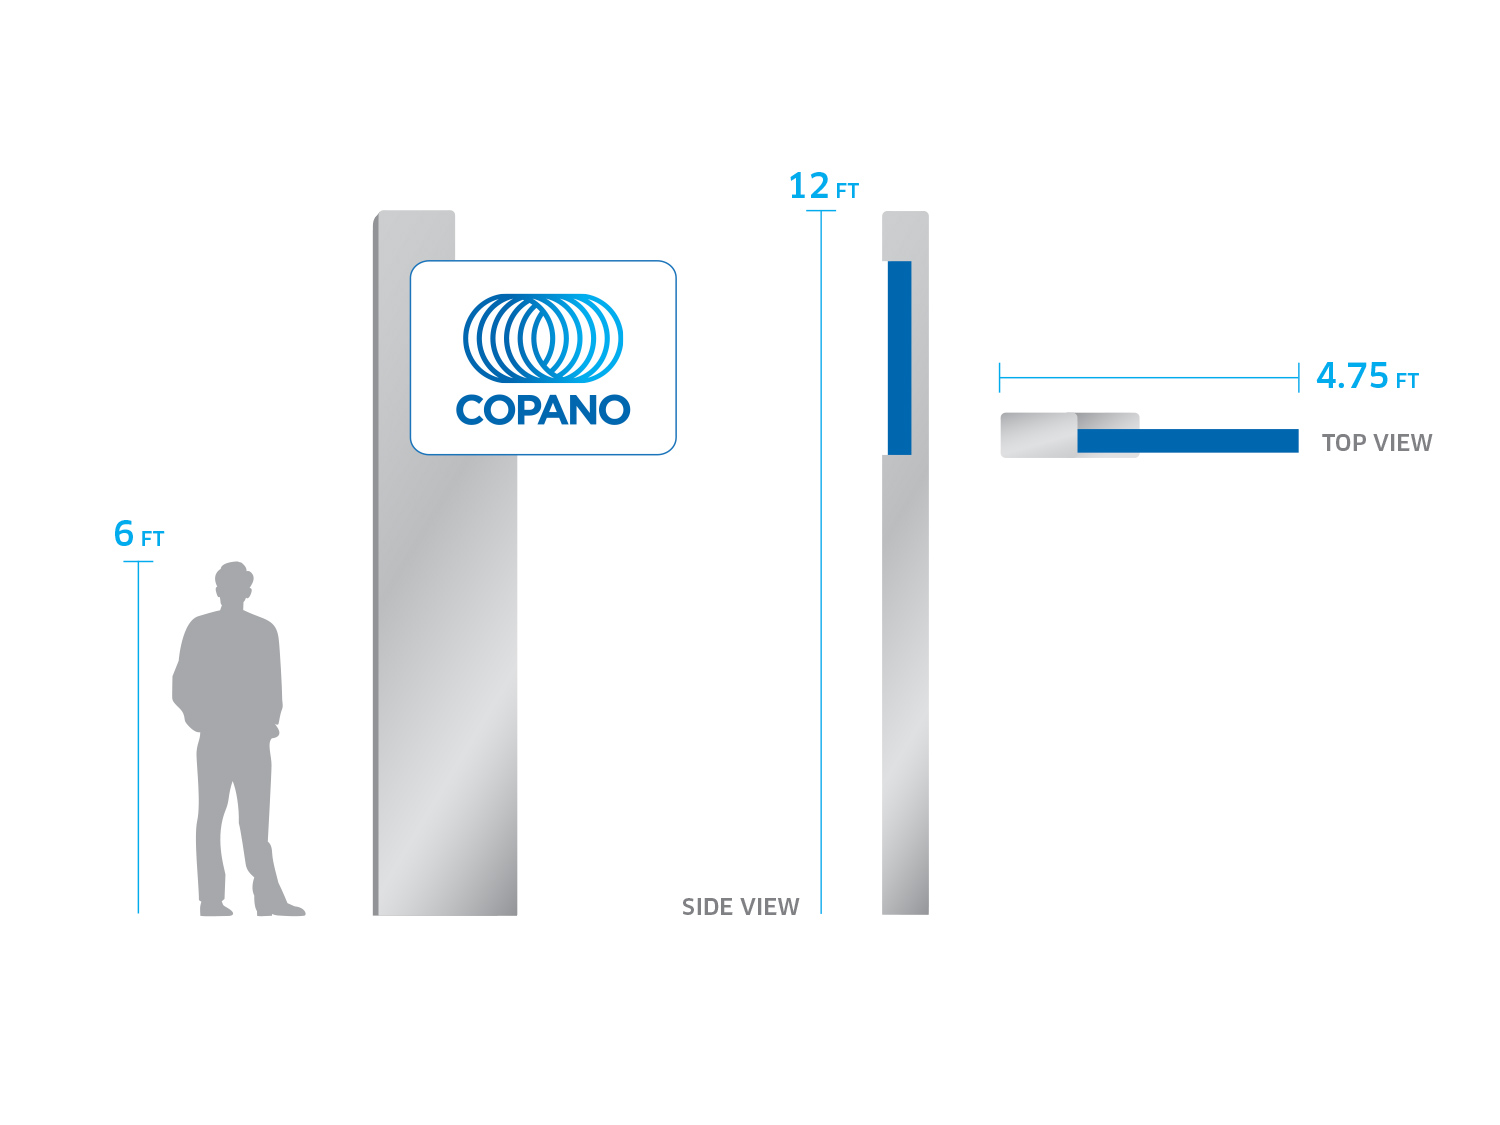 Image of Copano signage guidelines